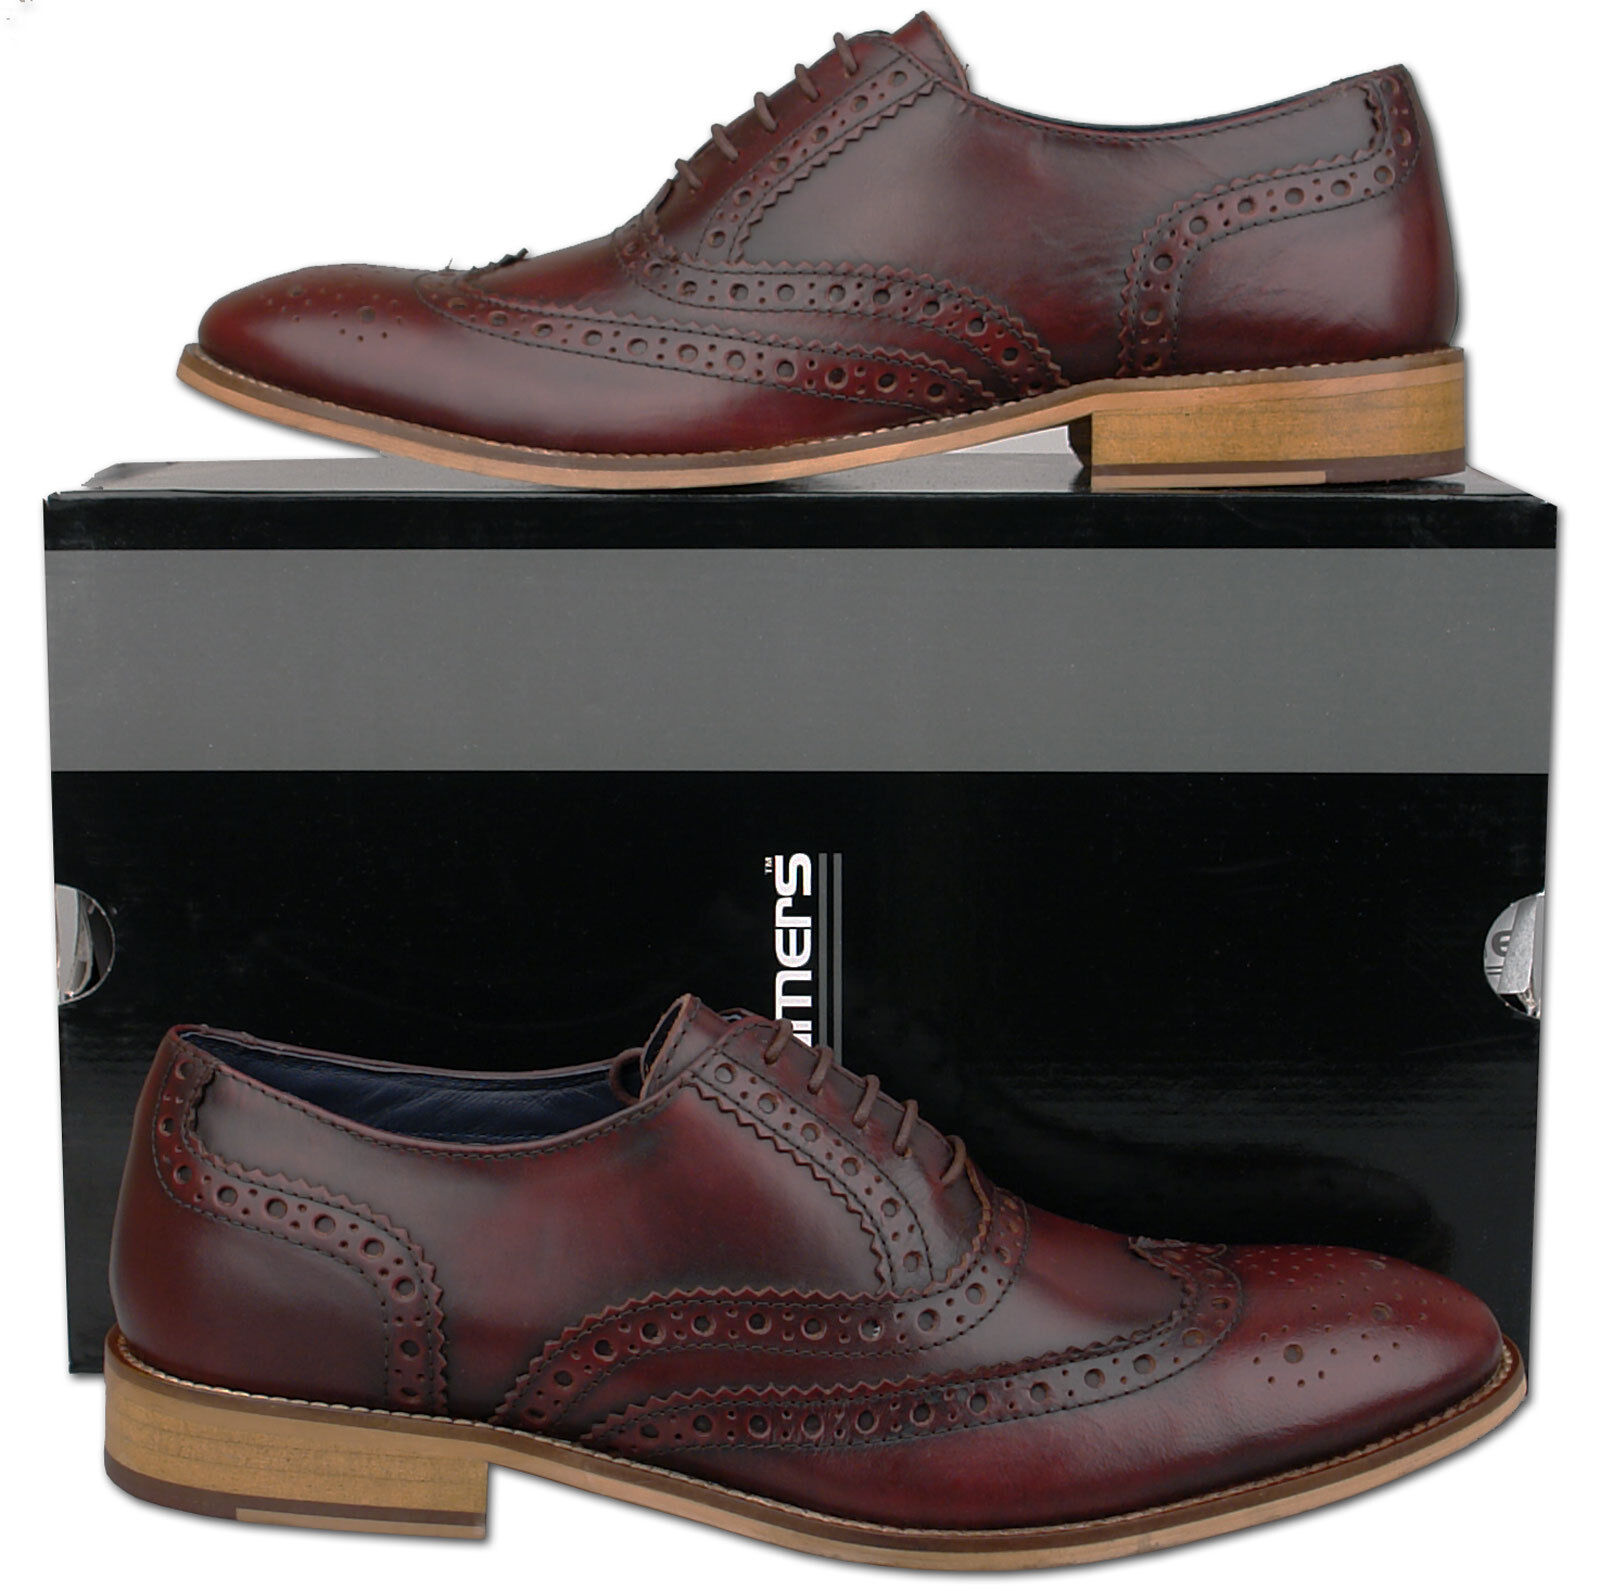 Mens New Burnished Oxblood Leather Formal Brogues shoes Sizes 6 7 8 9 10 11 12